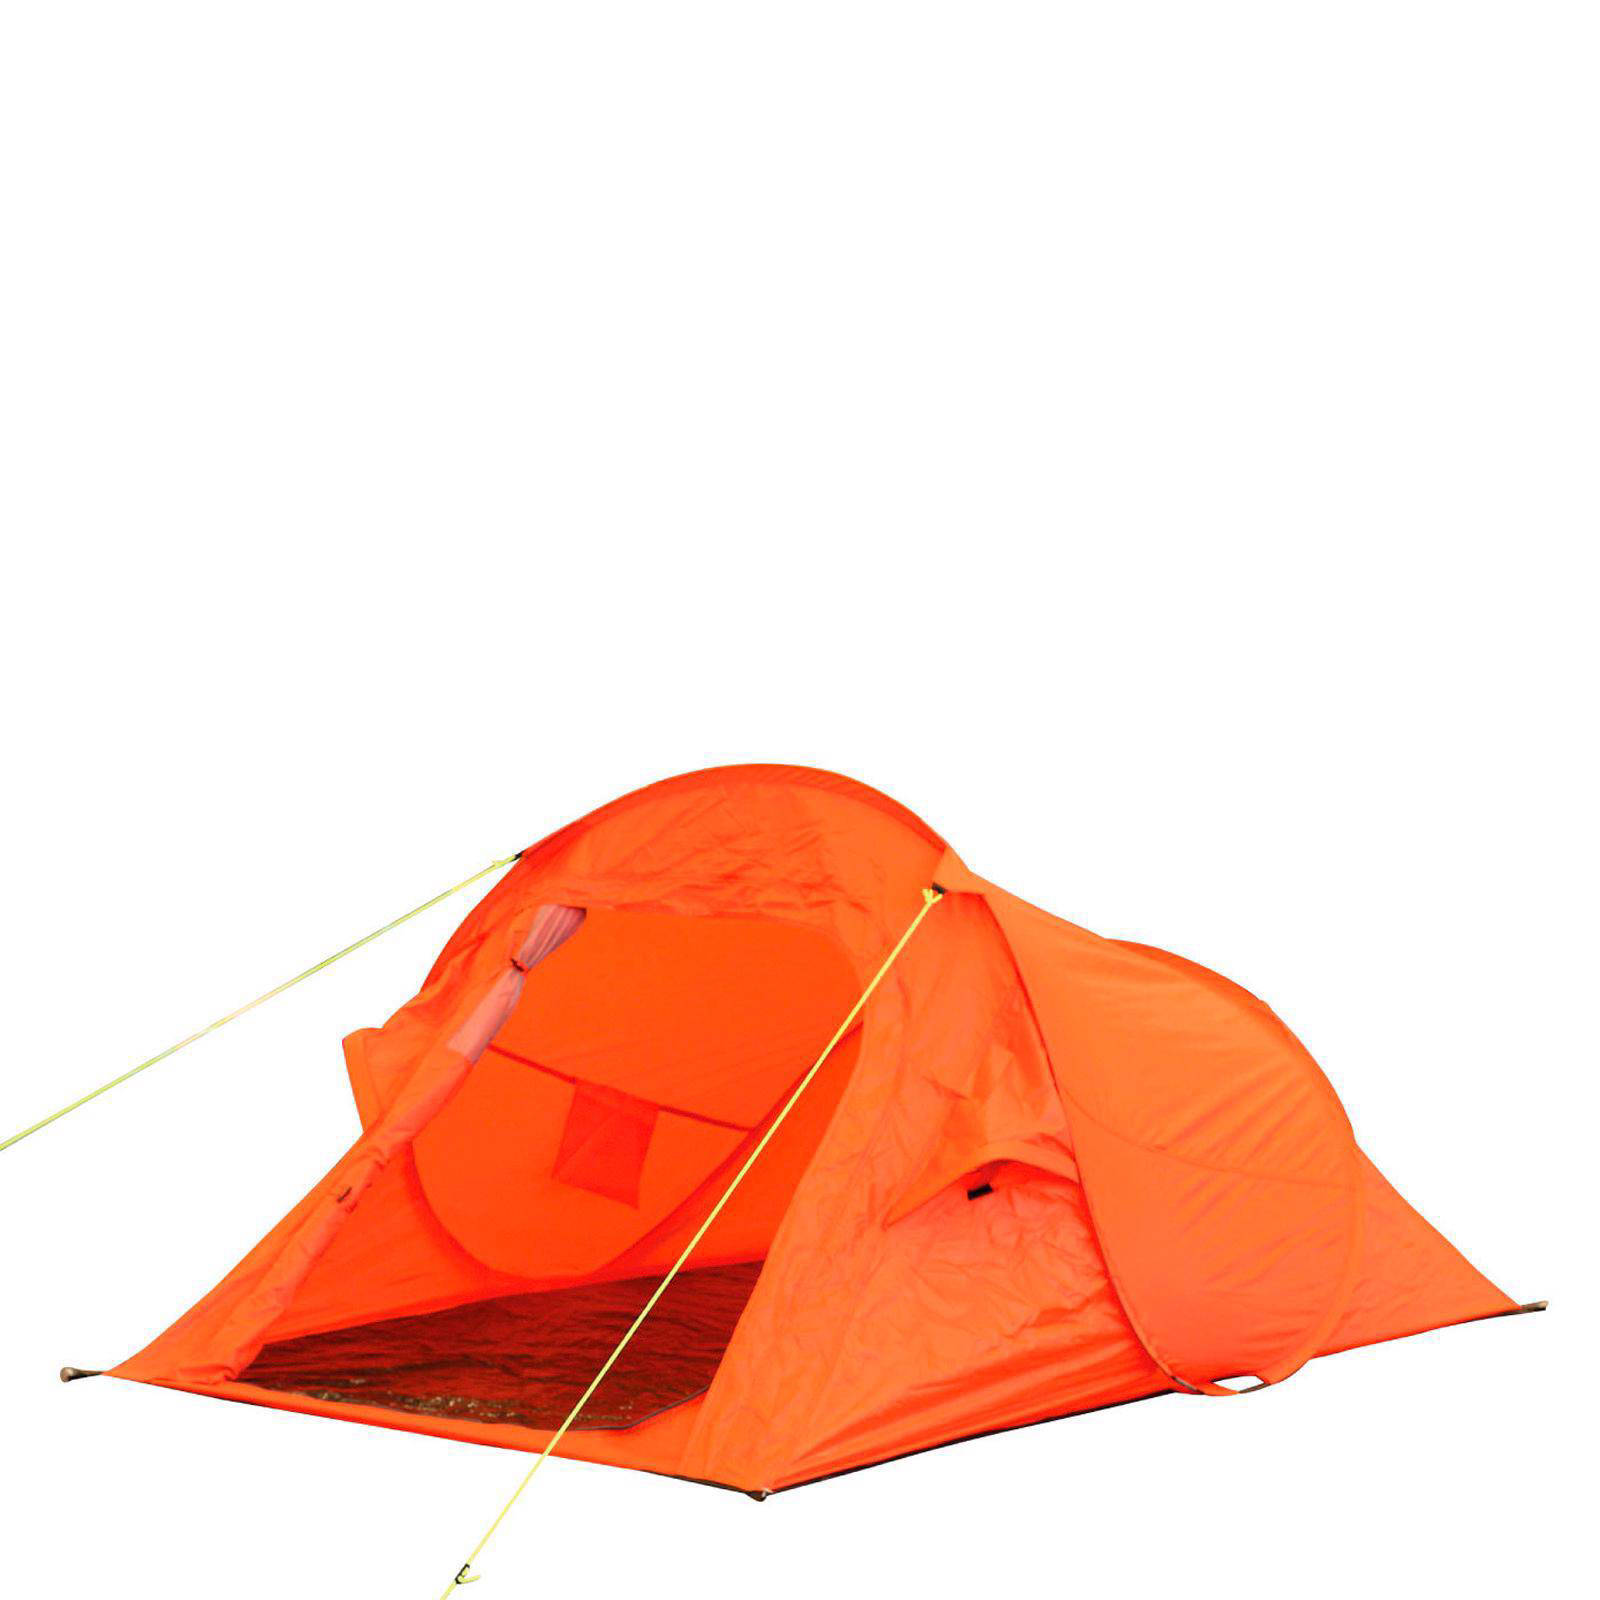 1 Persoons Pop Up Tent Vrijbuiter Outdoor 1 Persoons Pop Up Tent Wehkamp